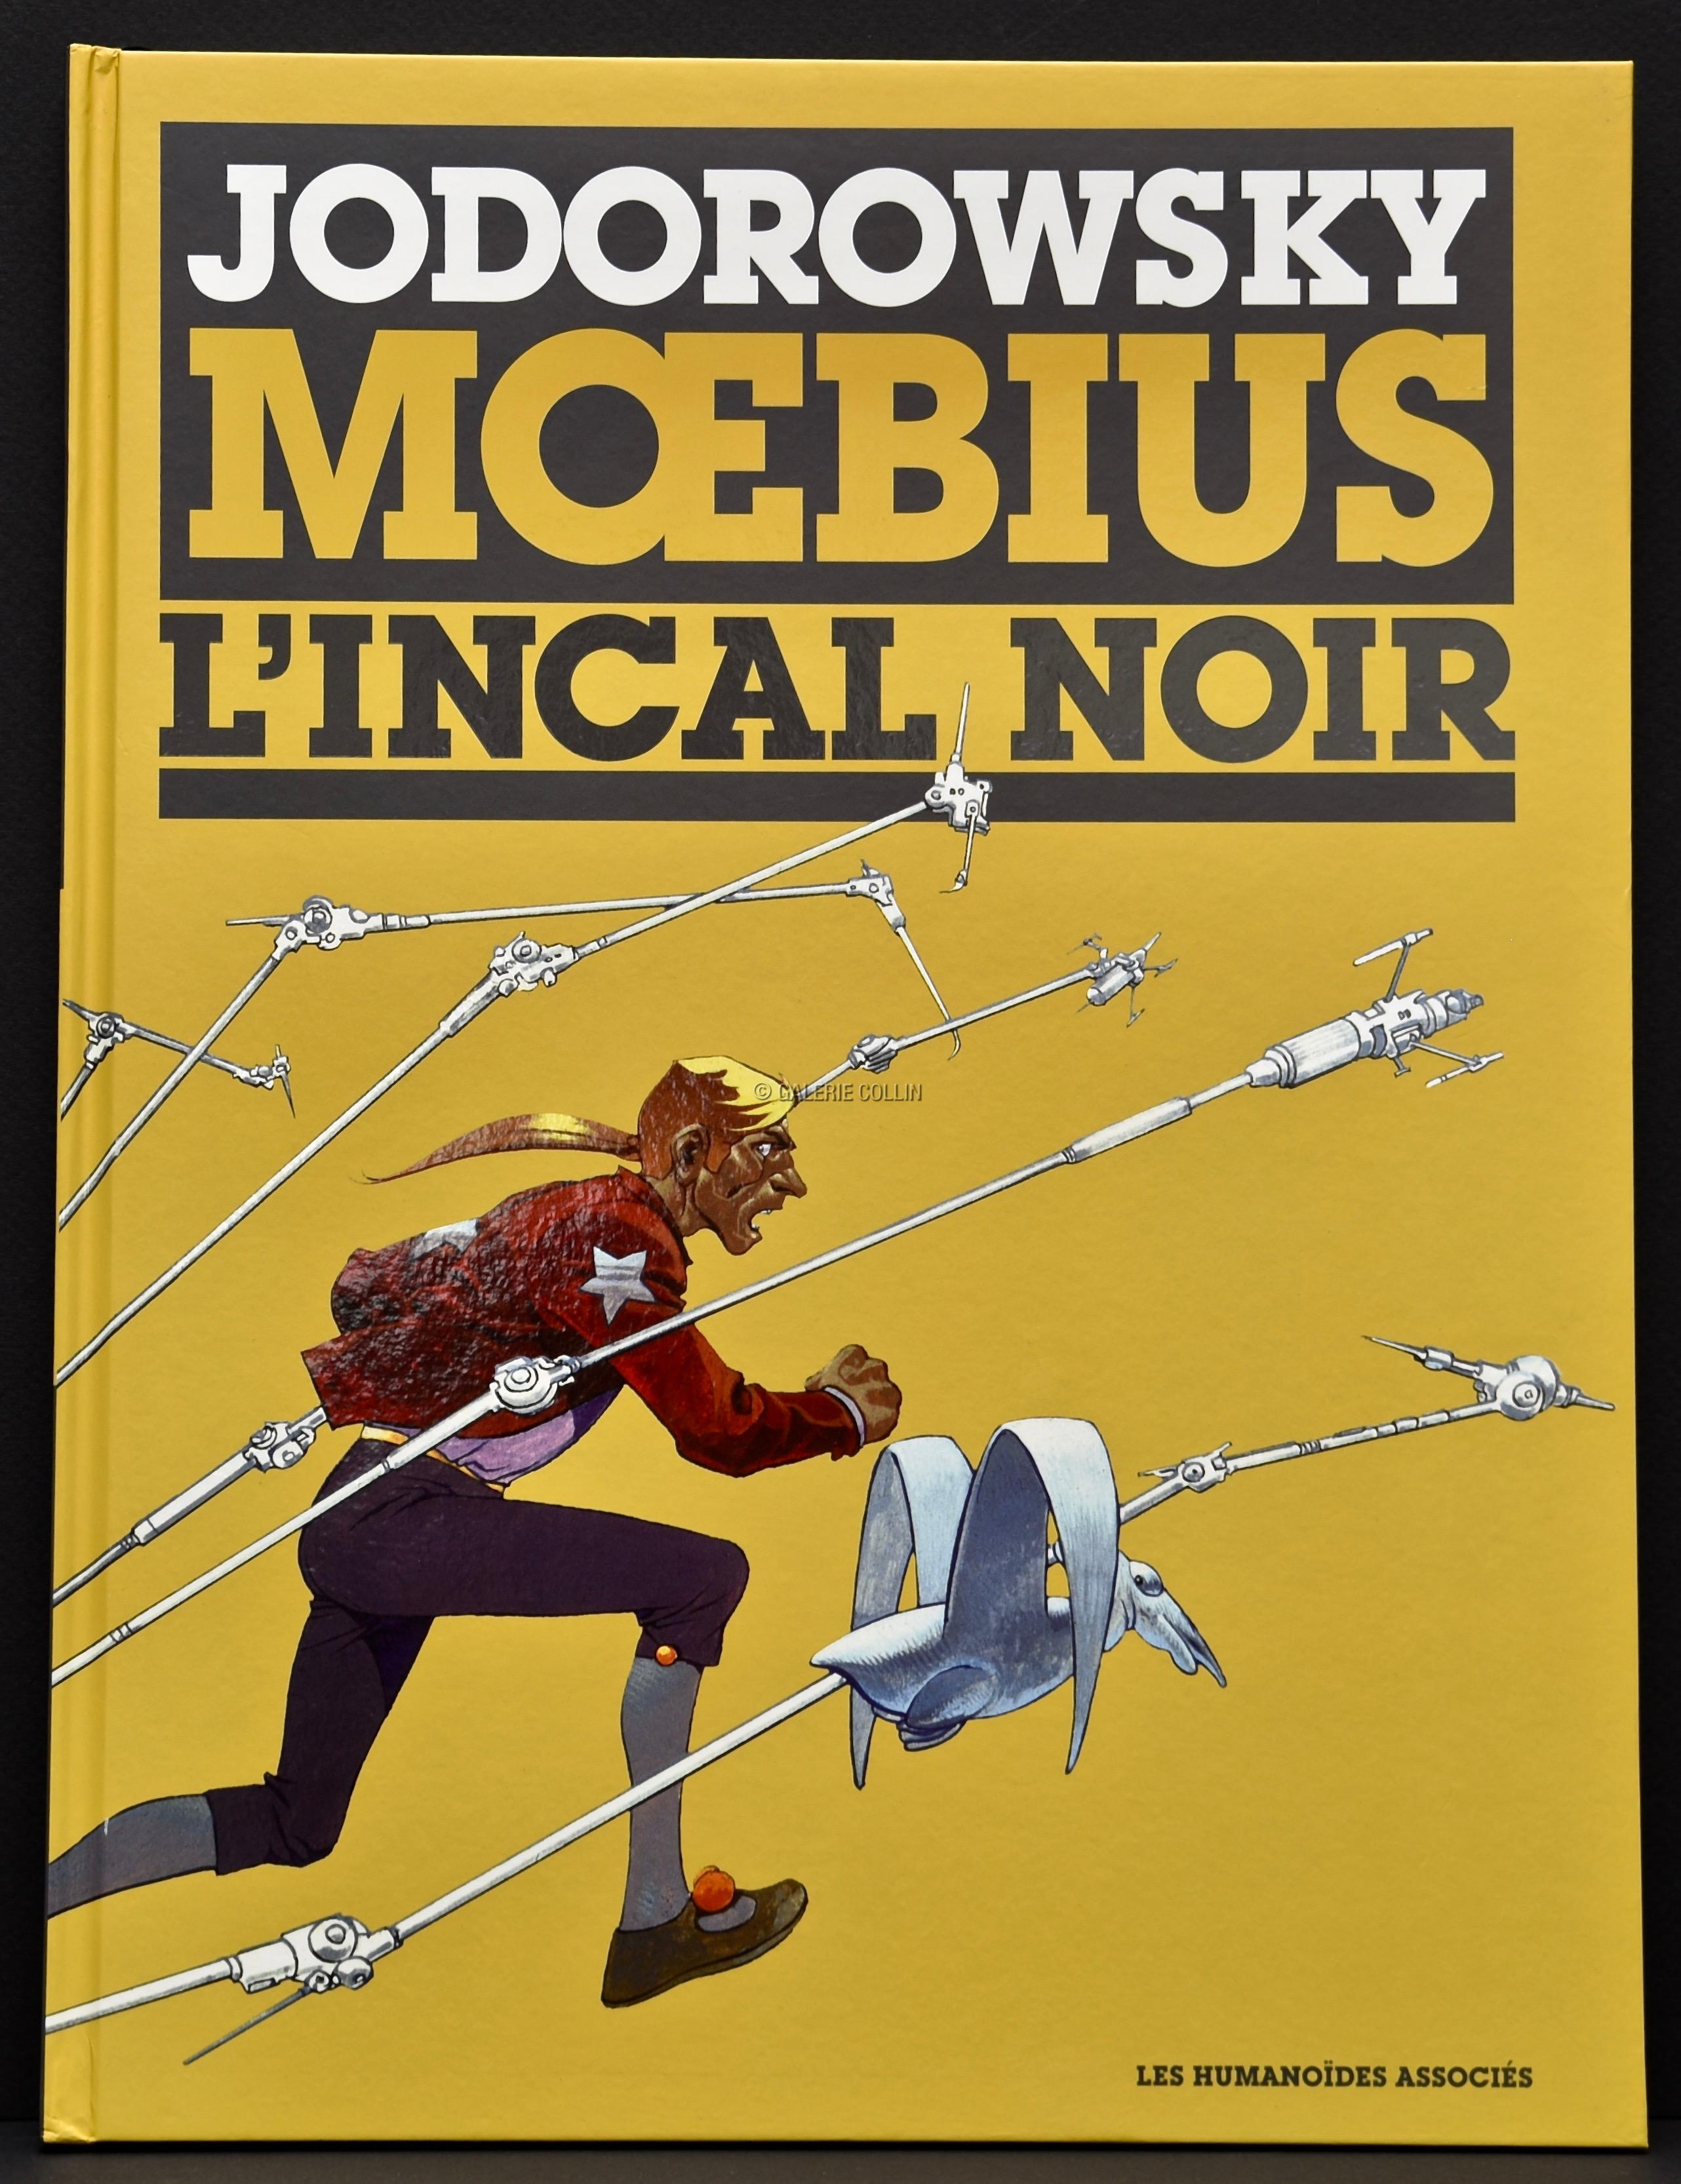 Moebius L Incal Tome 1 L Incal Noir Album Tirage De Luxe Edition Limitee A 1500ex